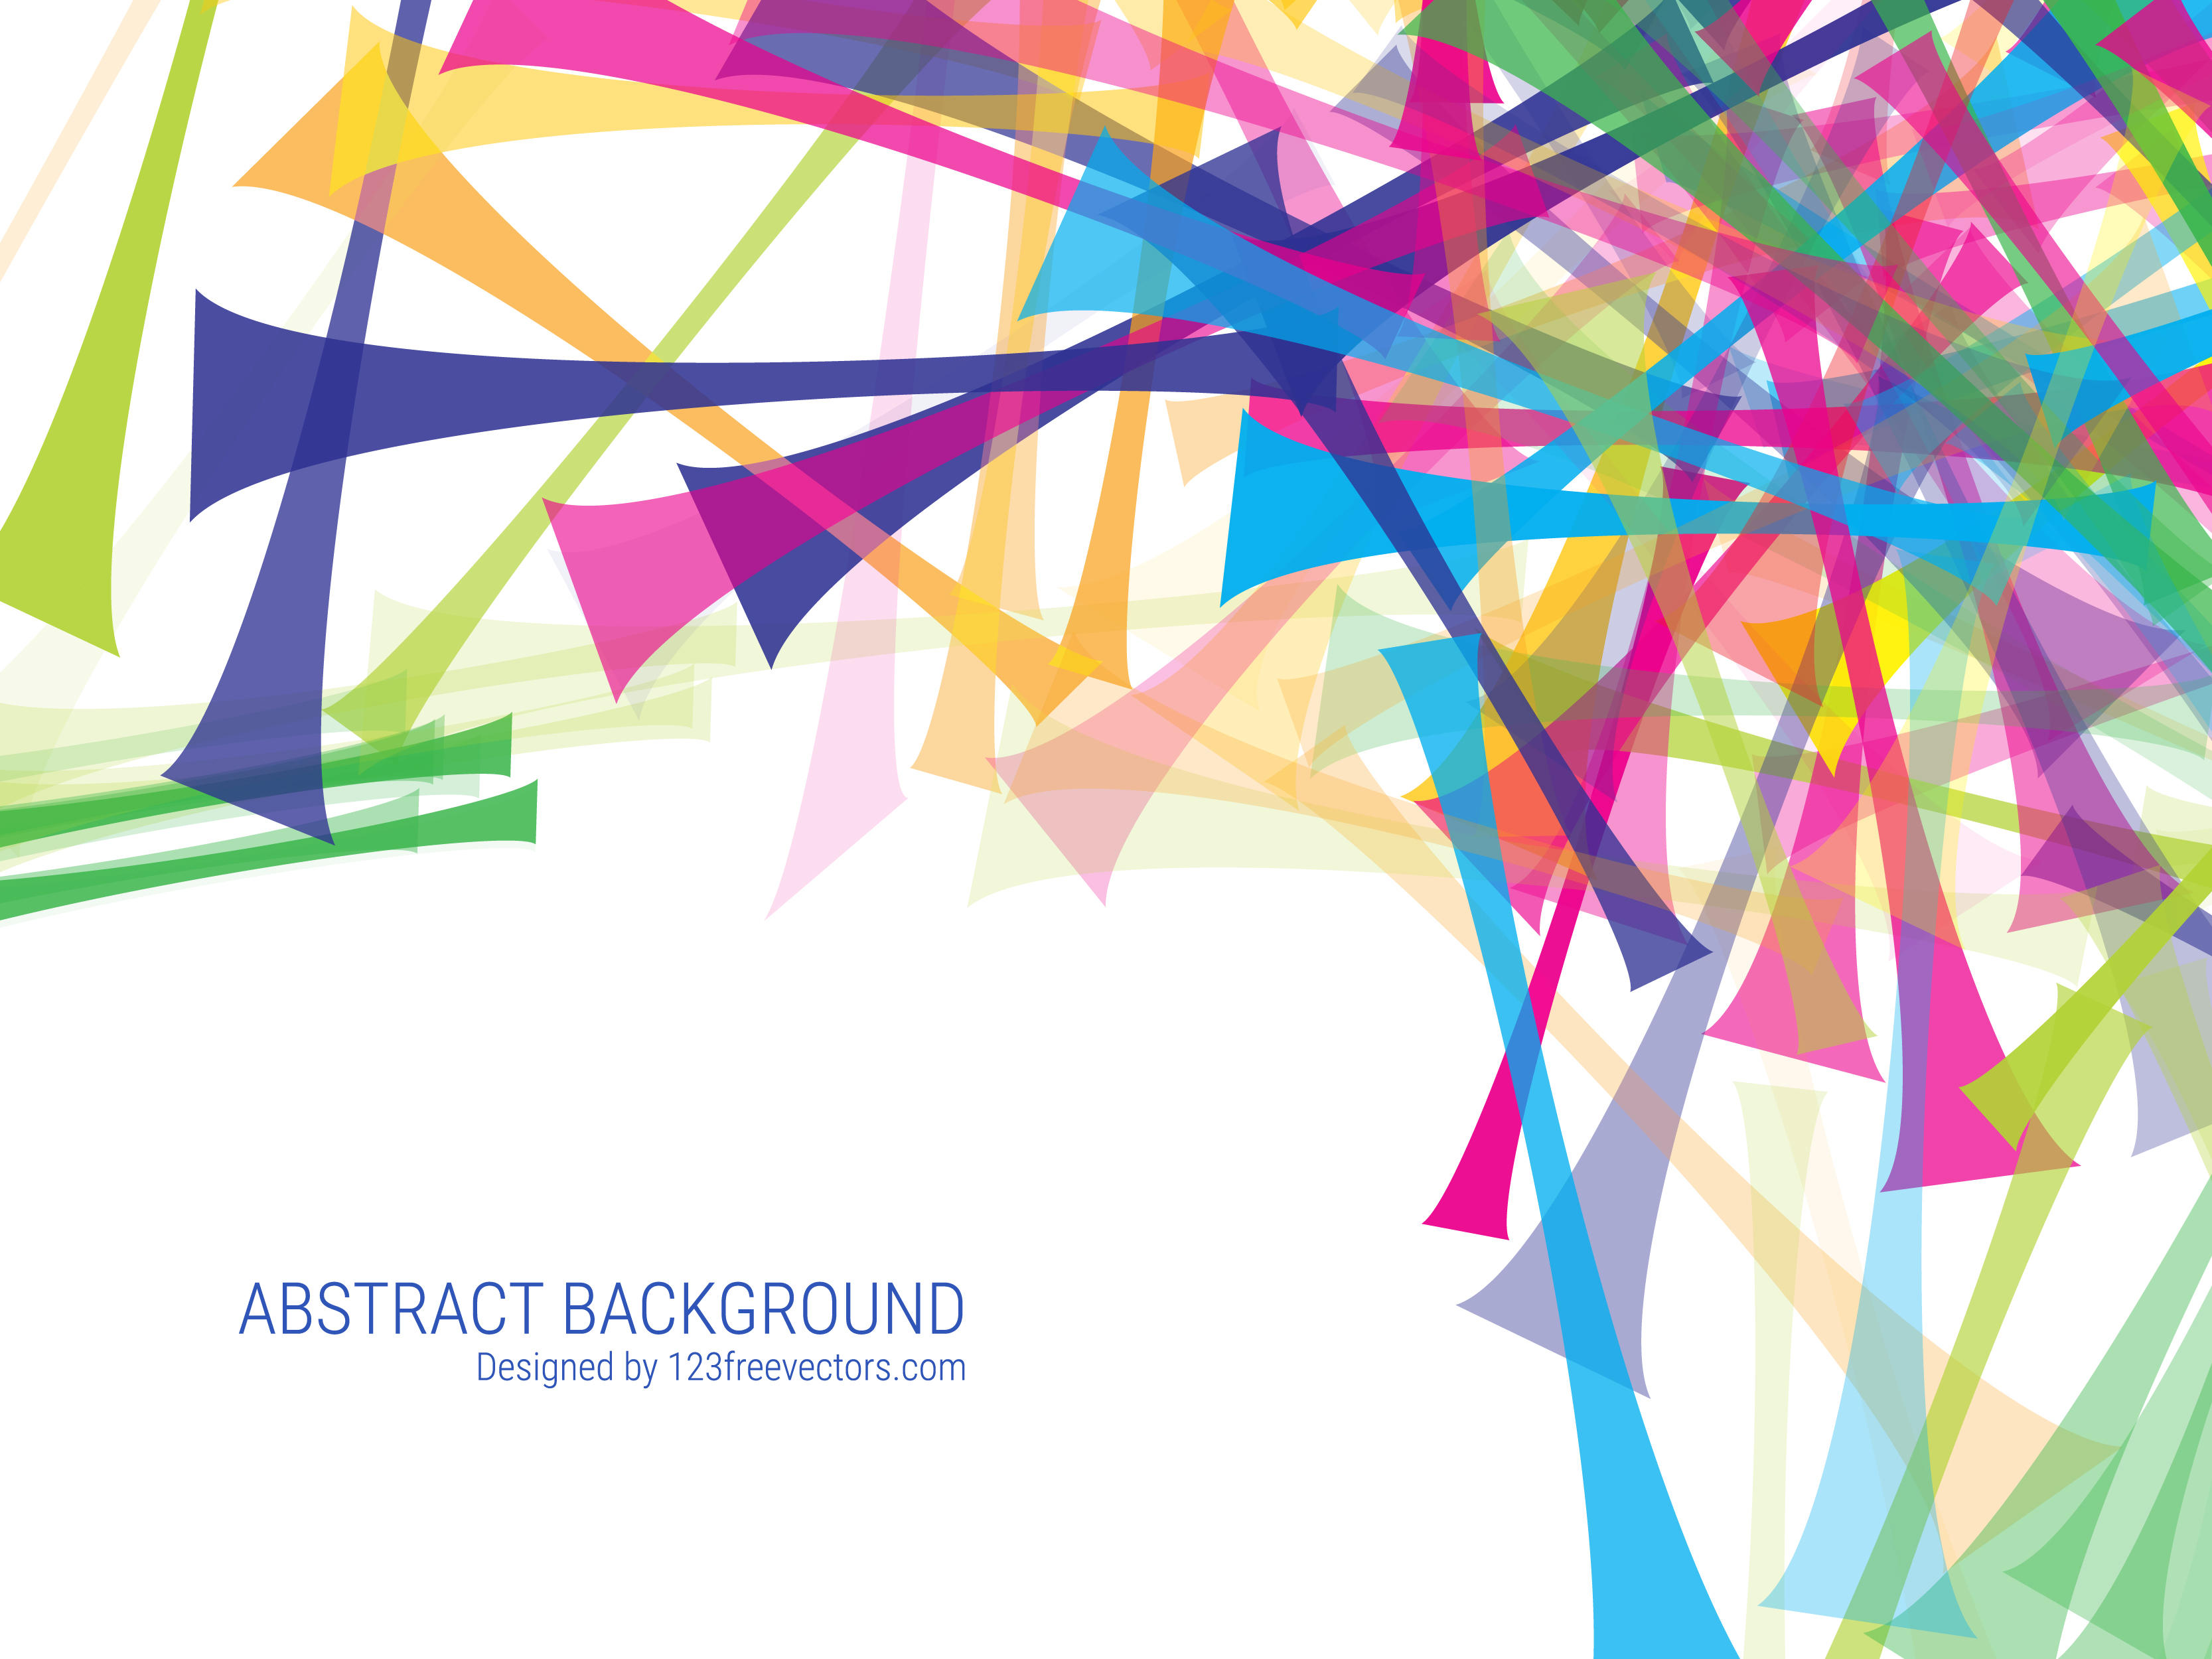 3333x2500 Colorful Abstract Background Vector Free 123freevectors